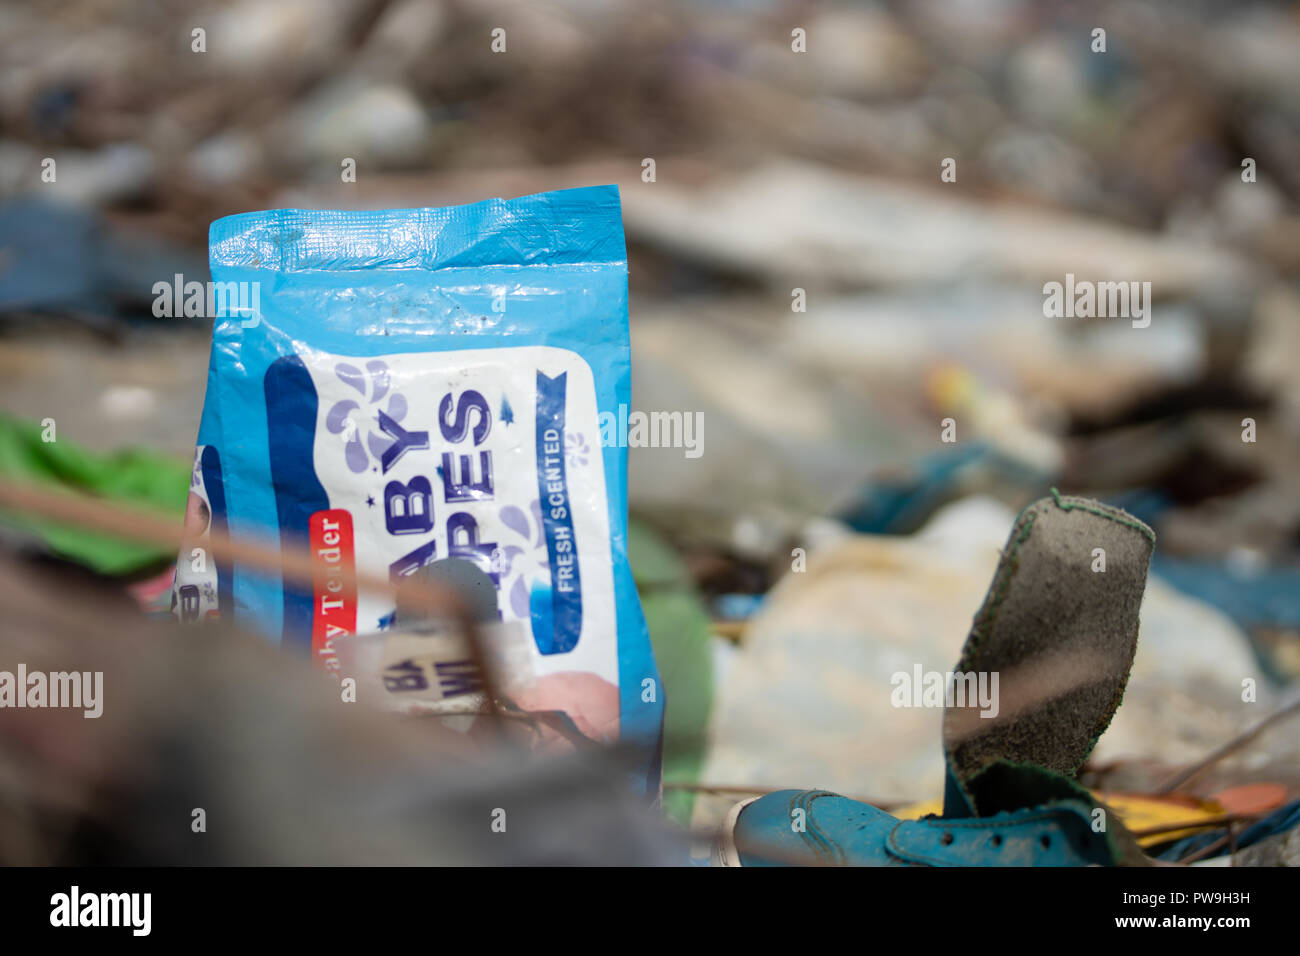 Discarded single use plastic sachets directly into the environment - regarded as one of the main plastic pollutants within South East Asia. - Stock Image